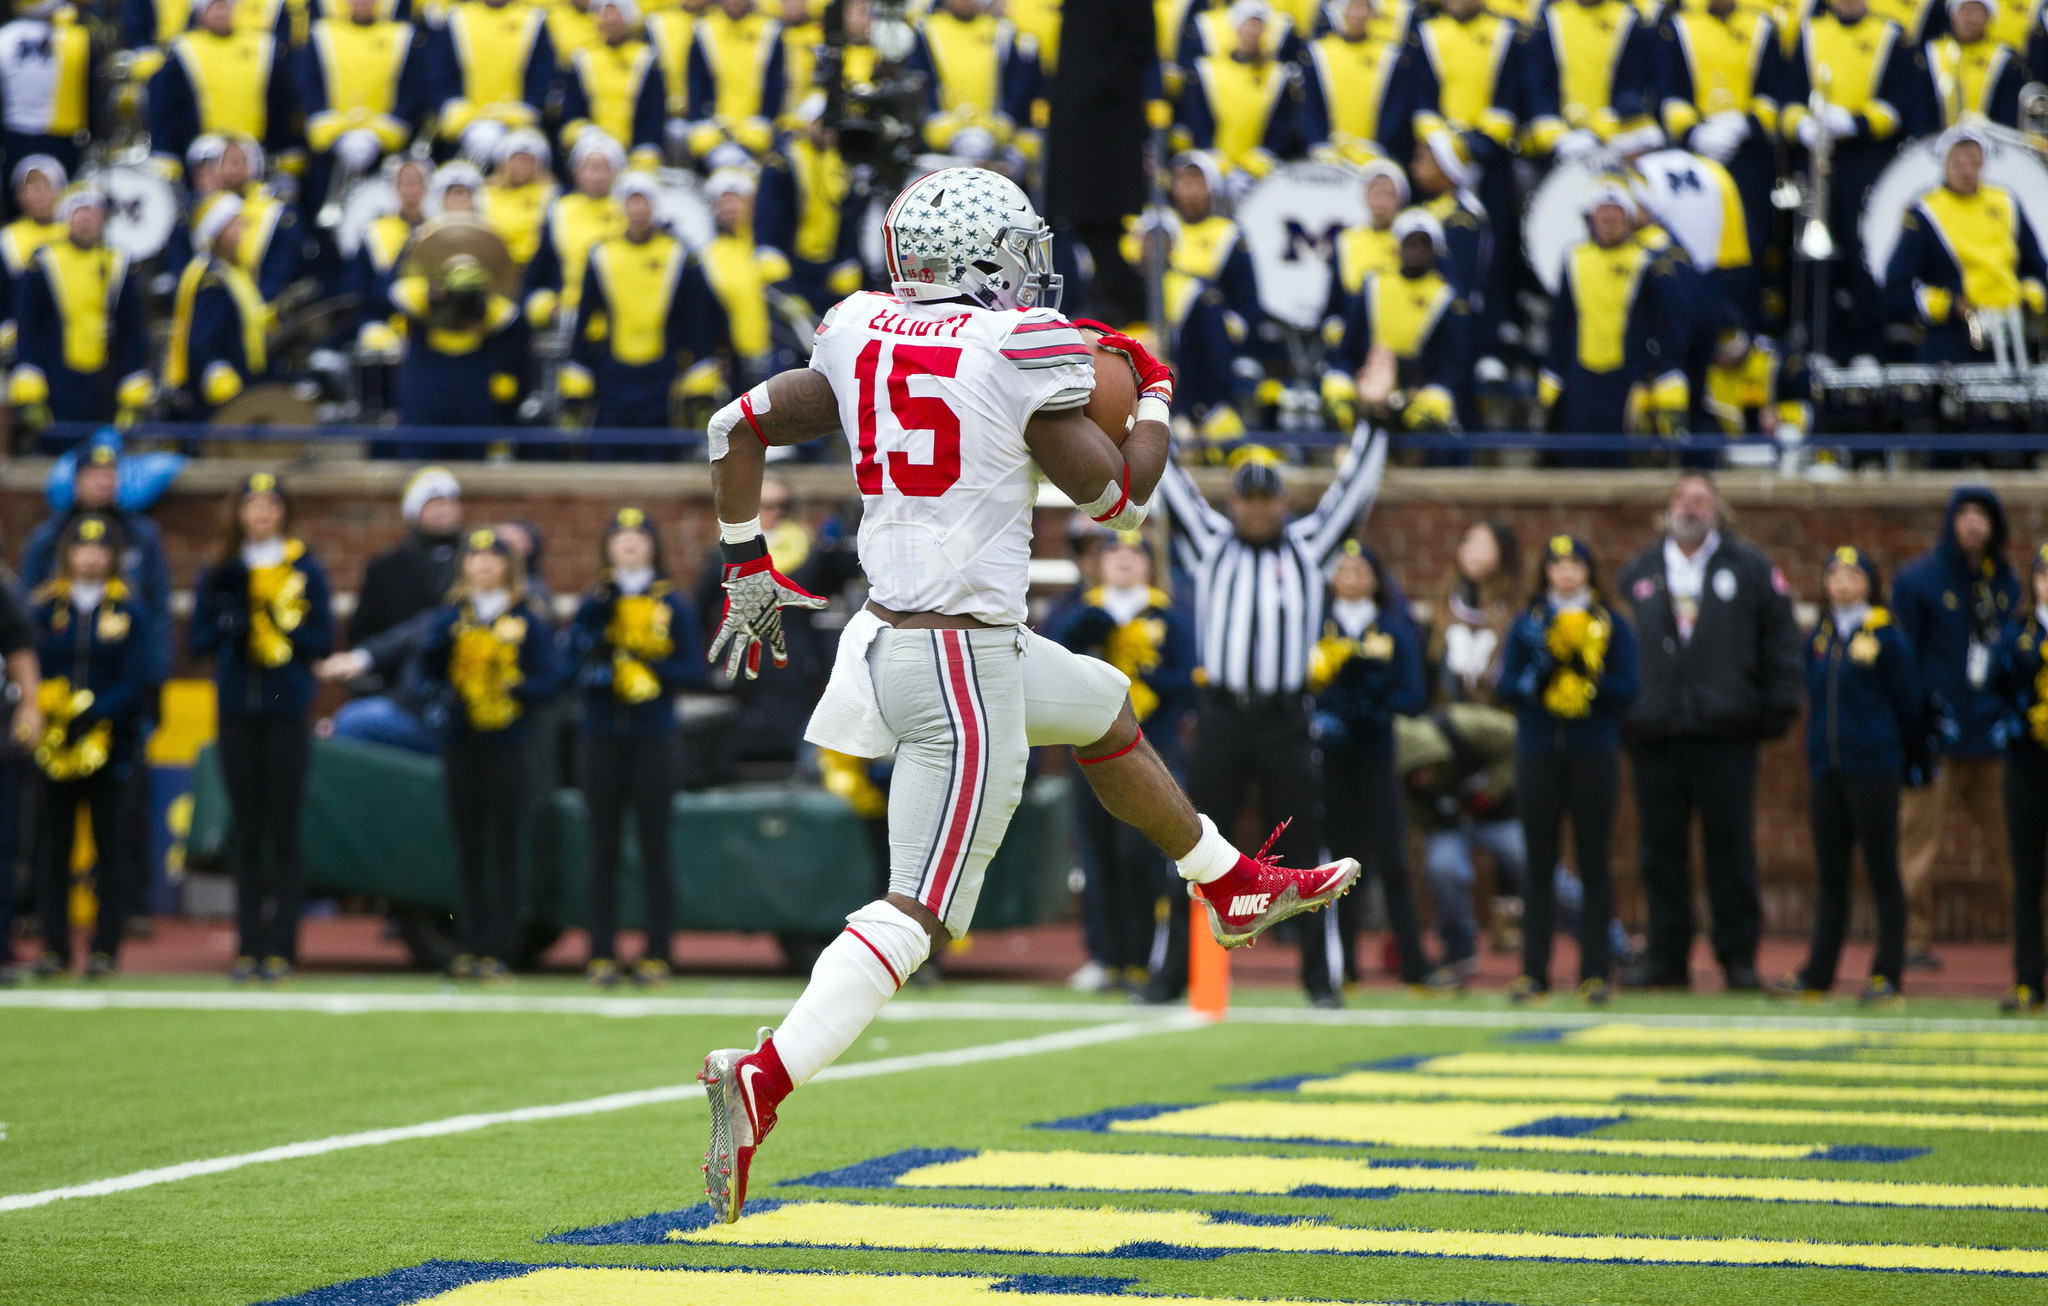 bcd3ecca27f ohio state number 15 jersey | Coupon code